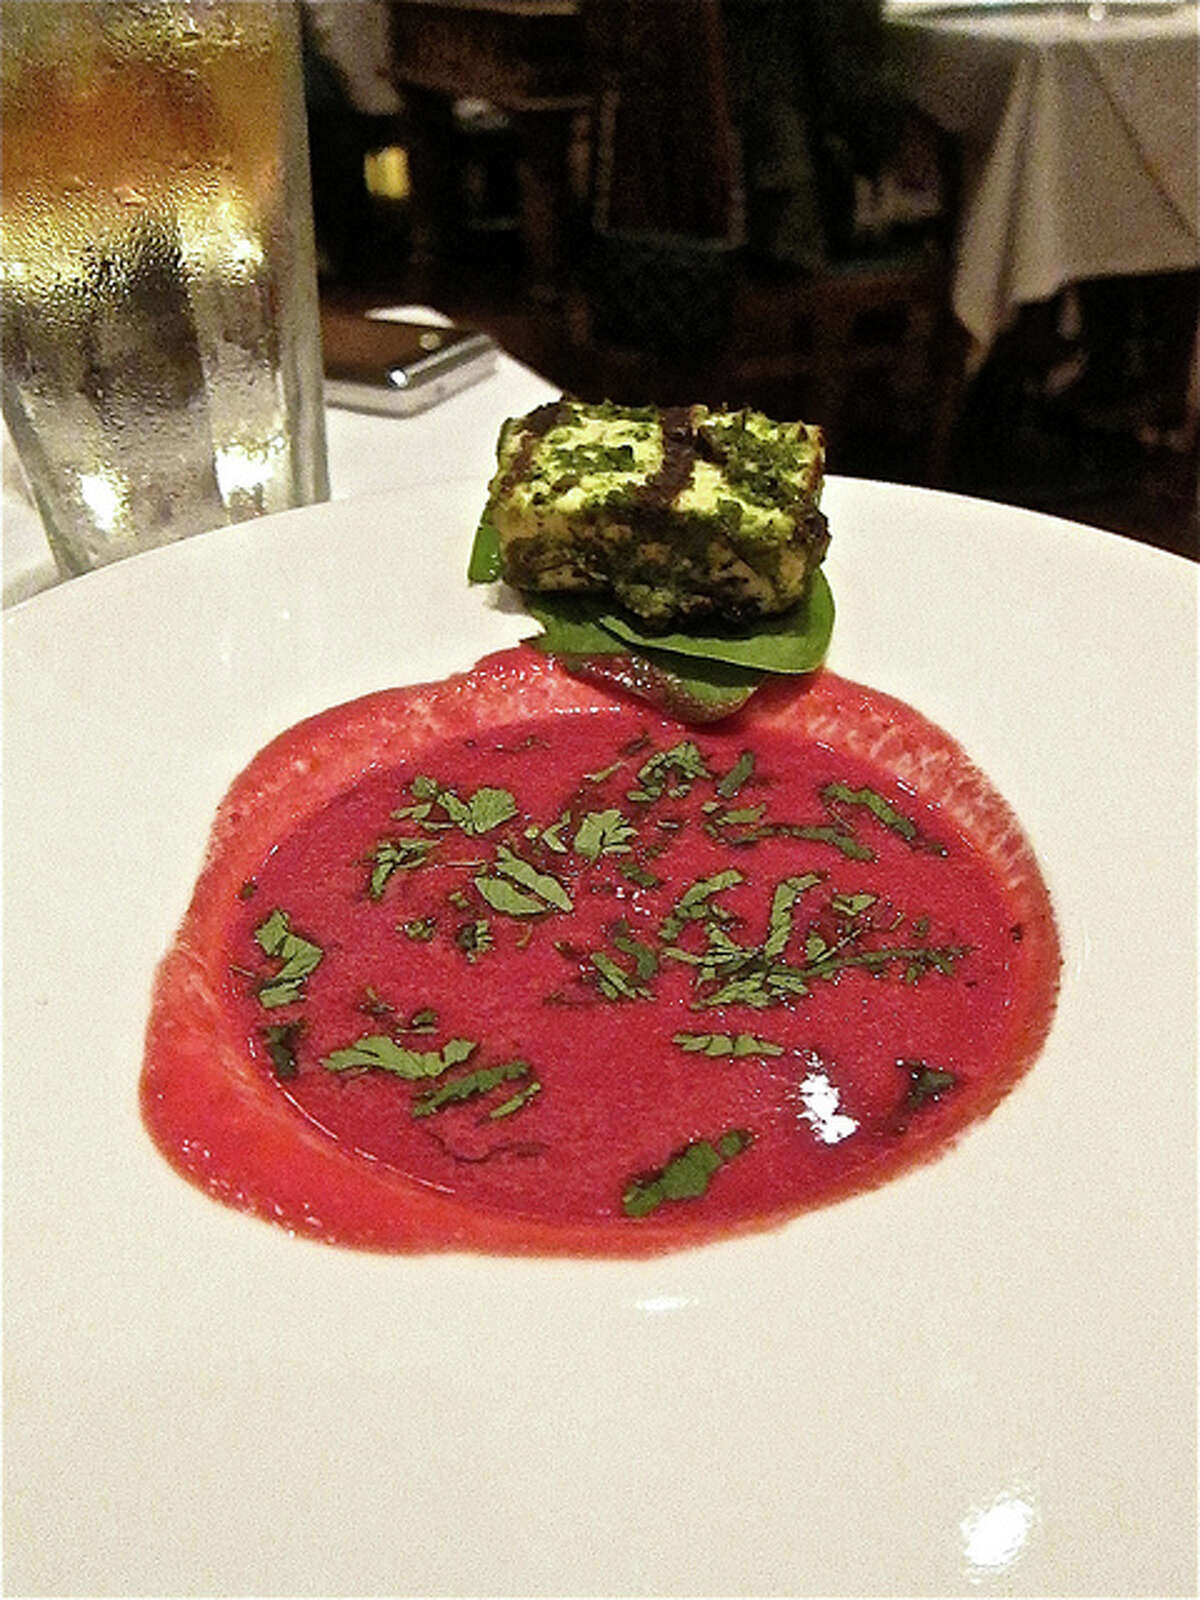 Beet soup with a paneer cutlet at Indika. Photo by Alison Cook